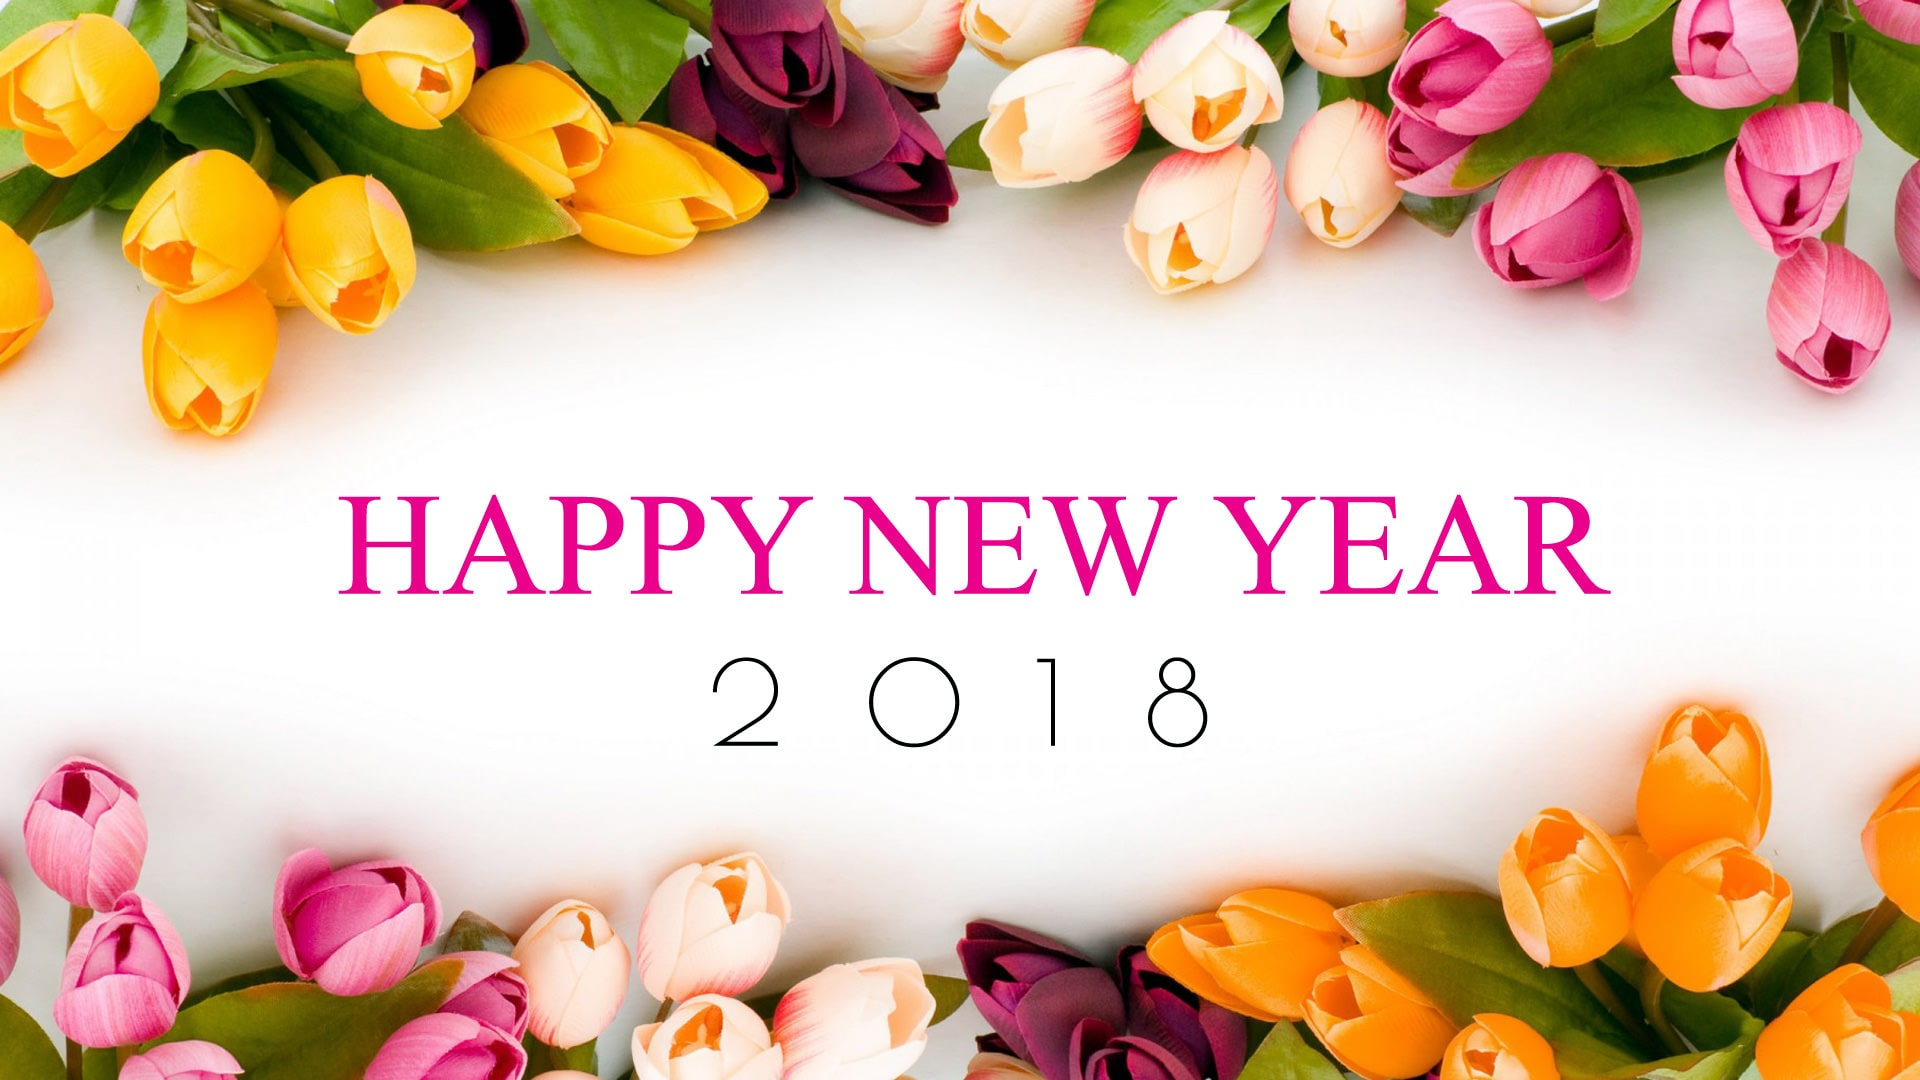 Happy New Year HD Wallpapers for 2018